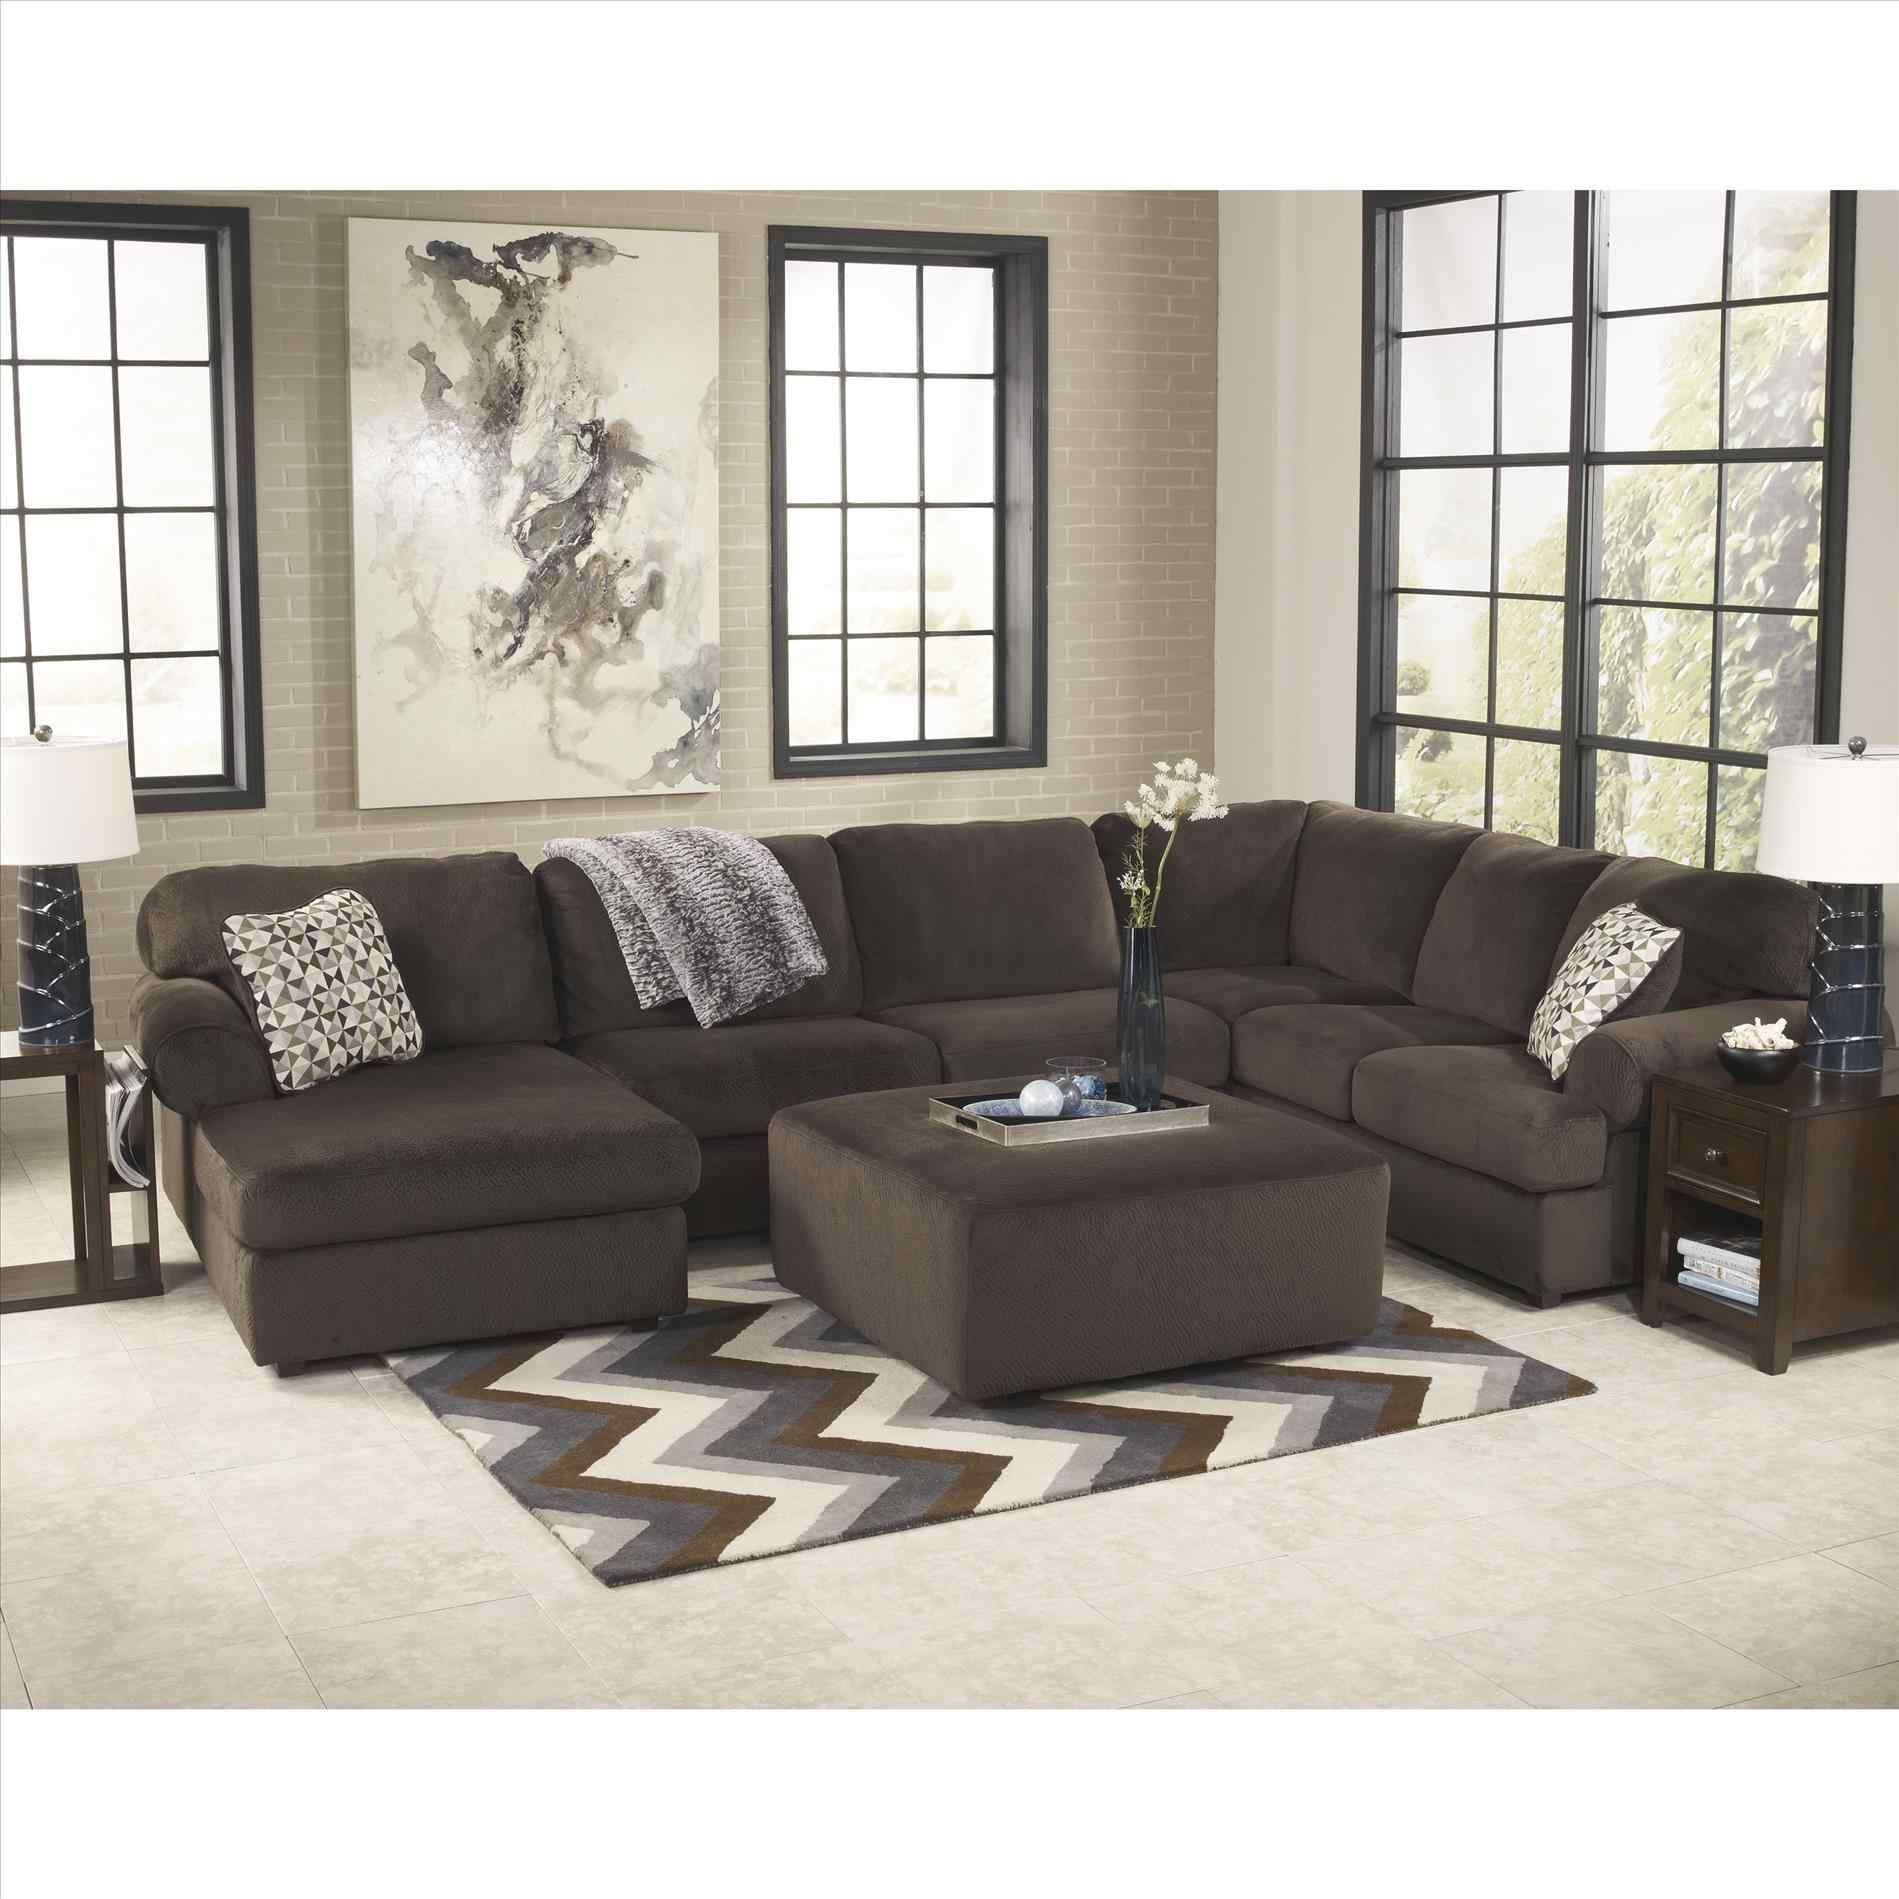 Piece deep comfy sectional sofa smith brothers casual dallas u the dallas deep comfy sectional sofa u the our lowe looks great